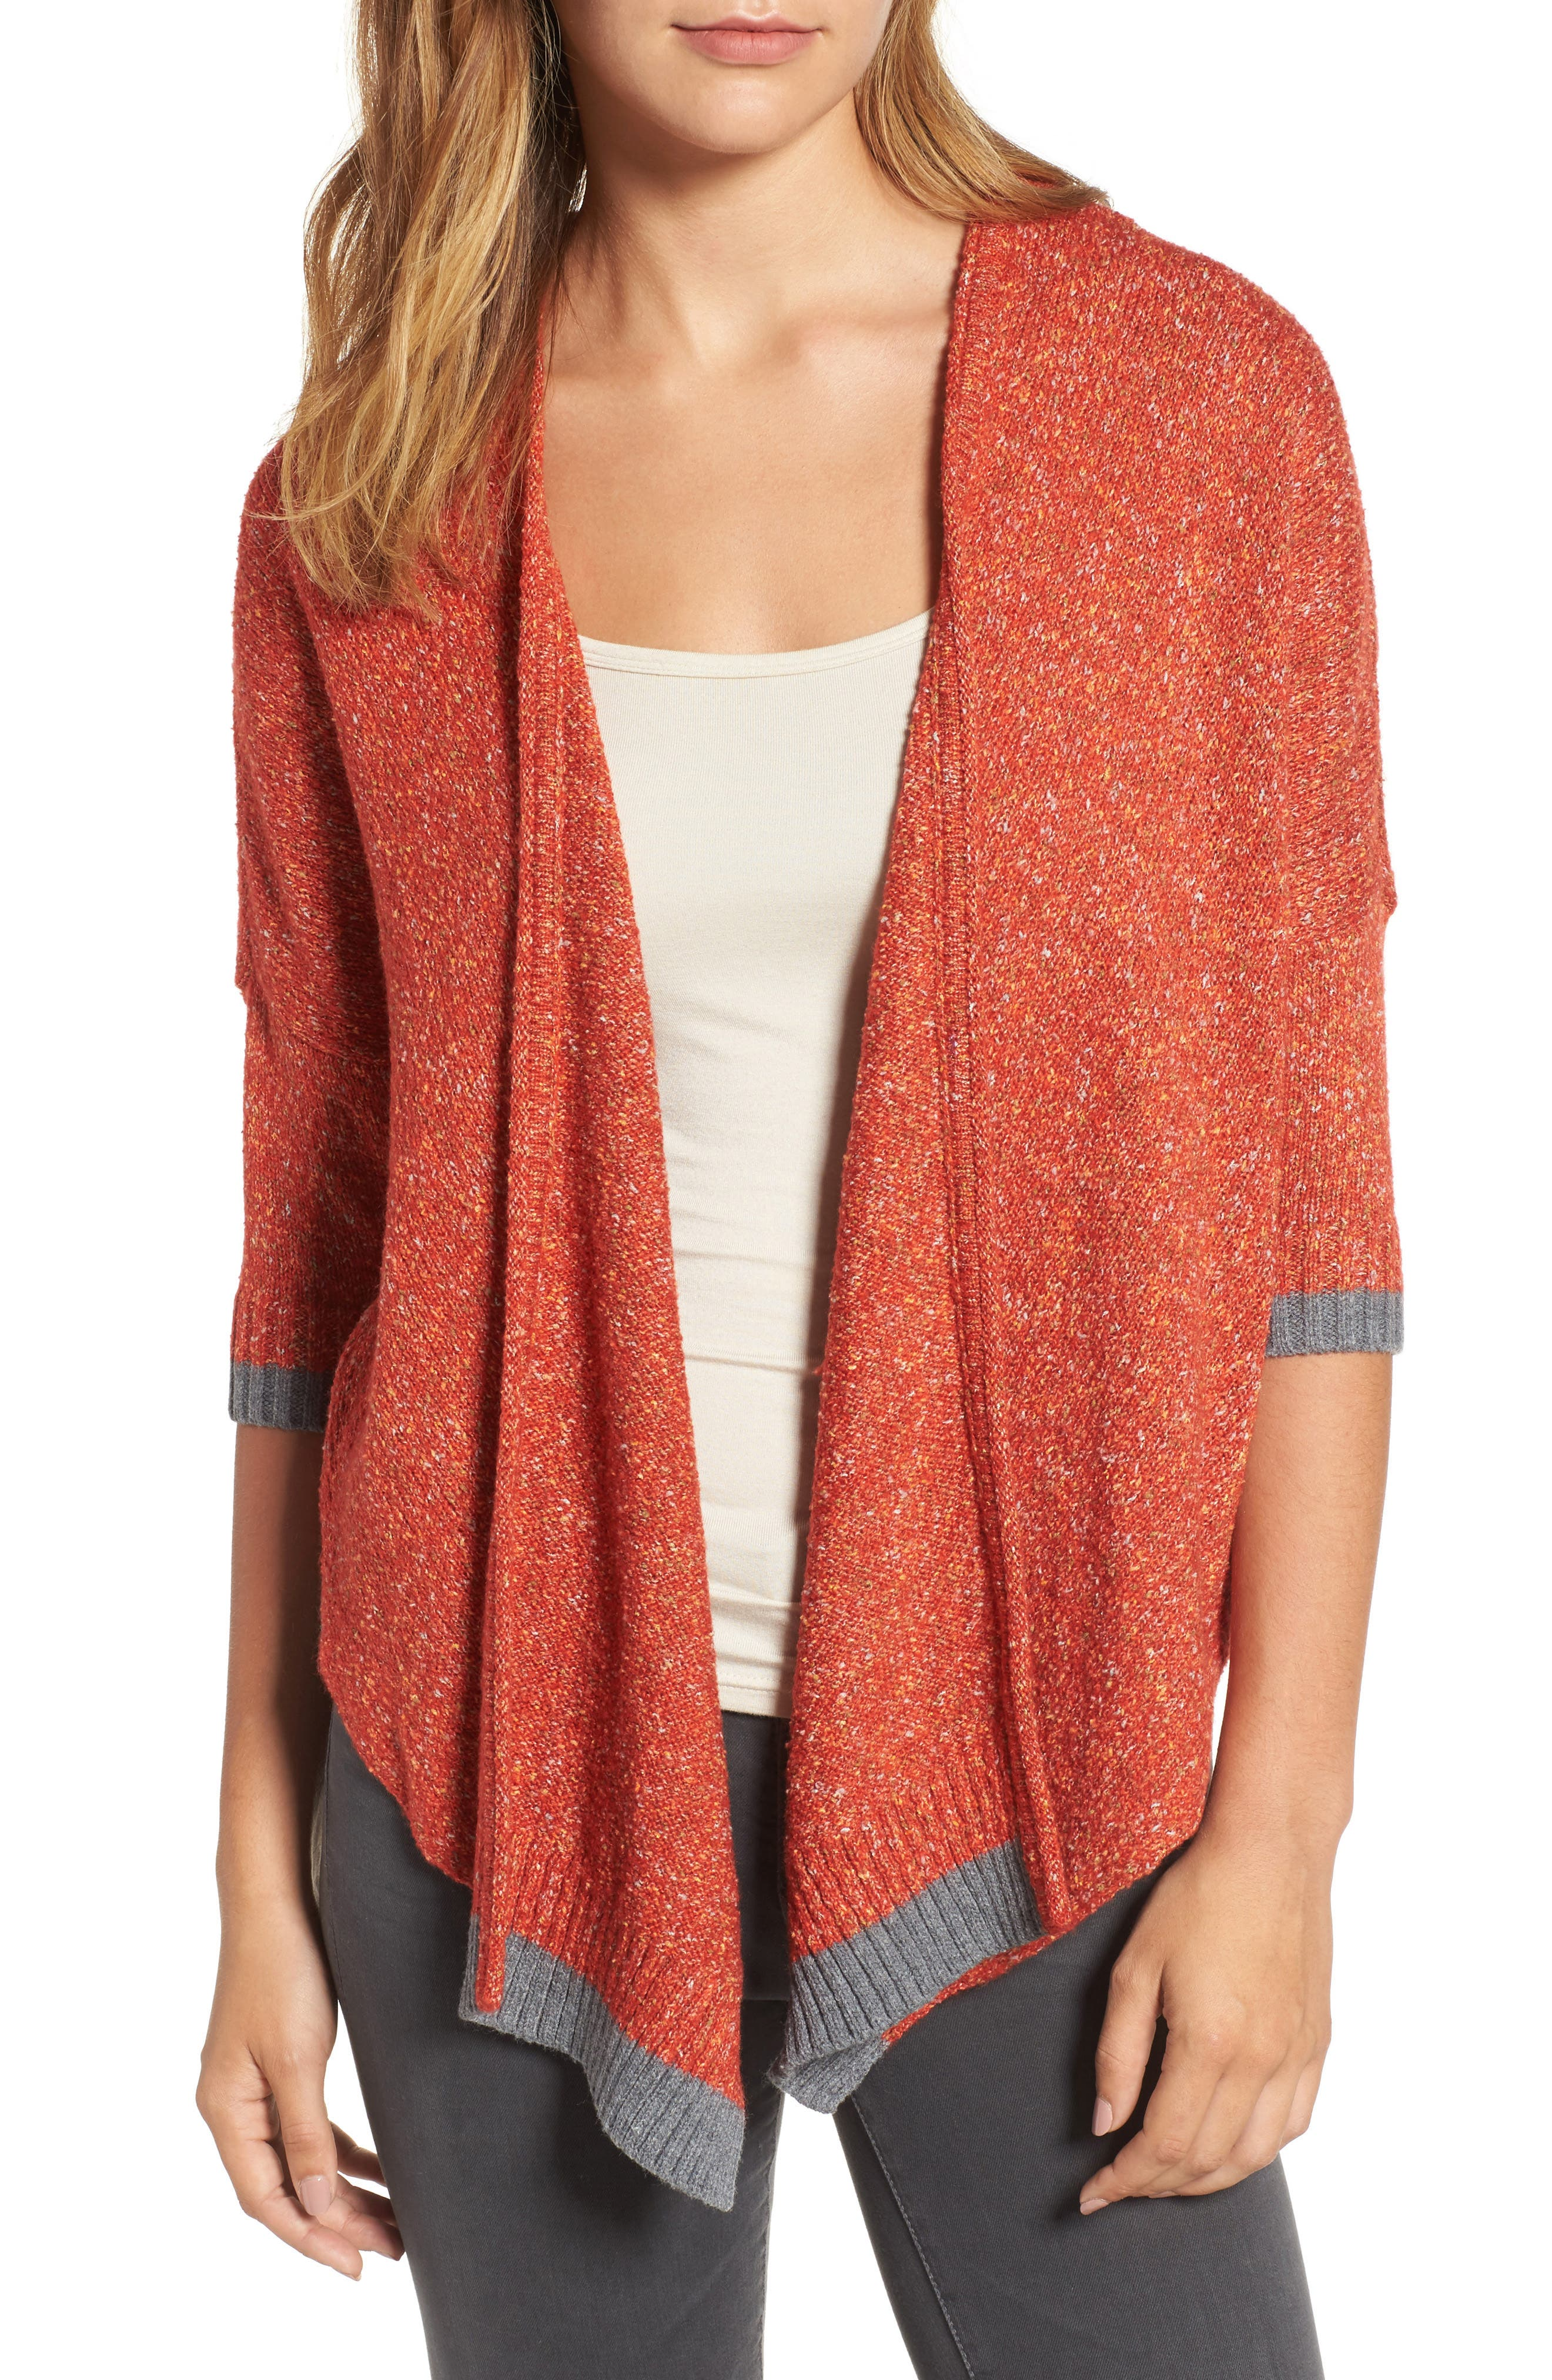 Alternate Image 1 Selected - Wit & Wisdom Open Front Knit Cardigan (Nordstrom Exclusive)